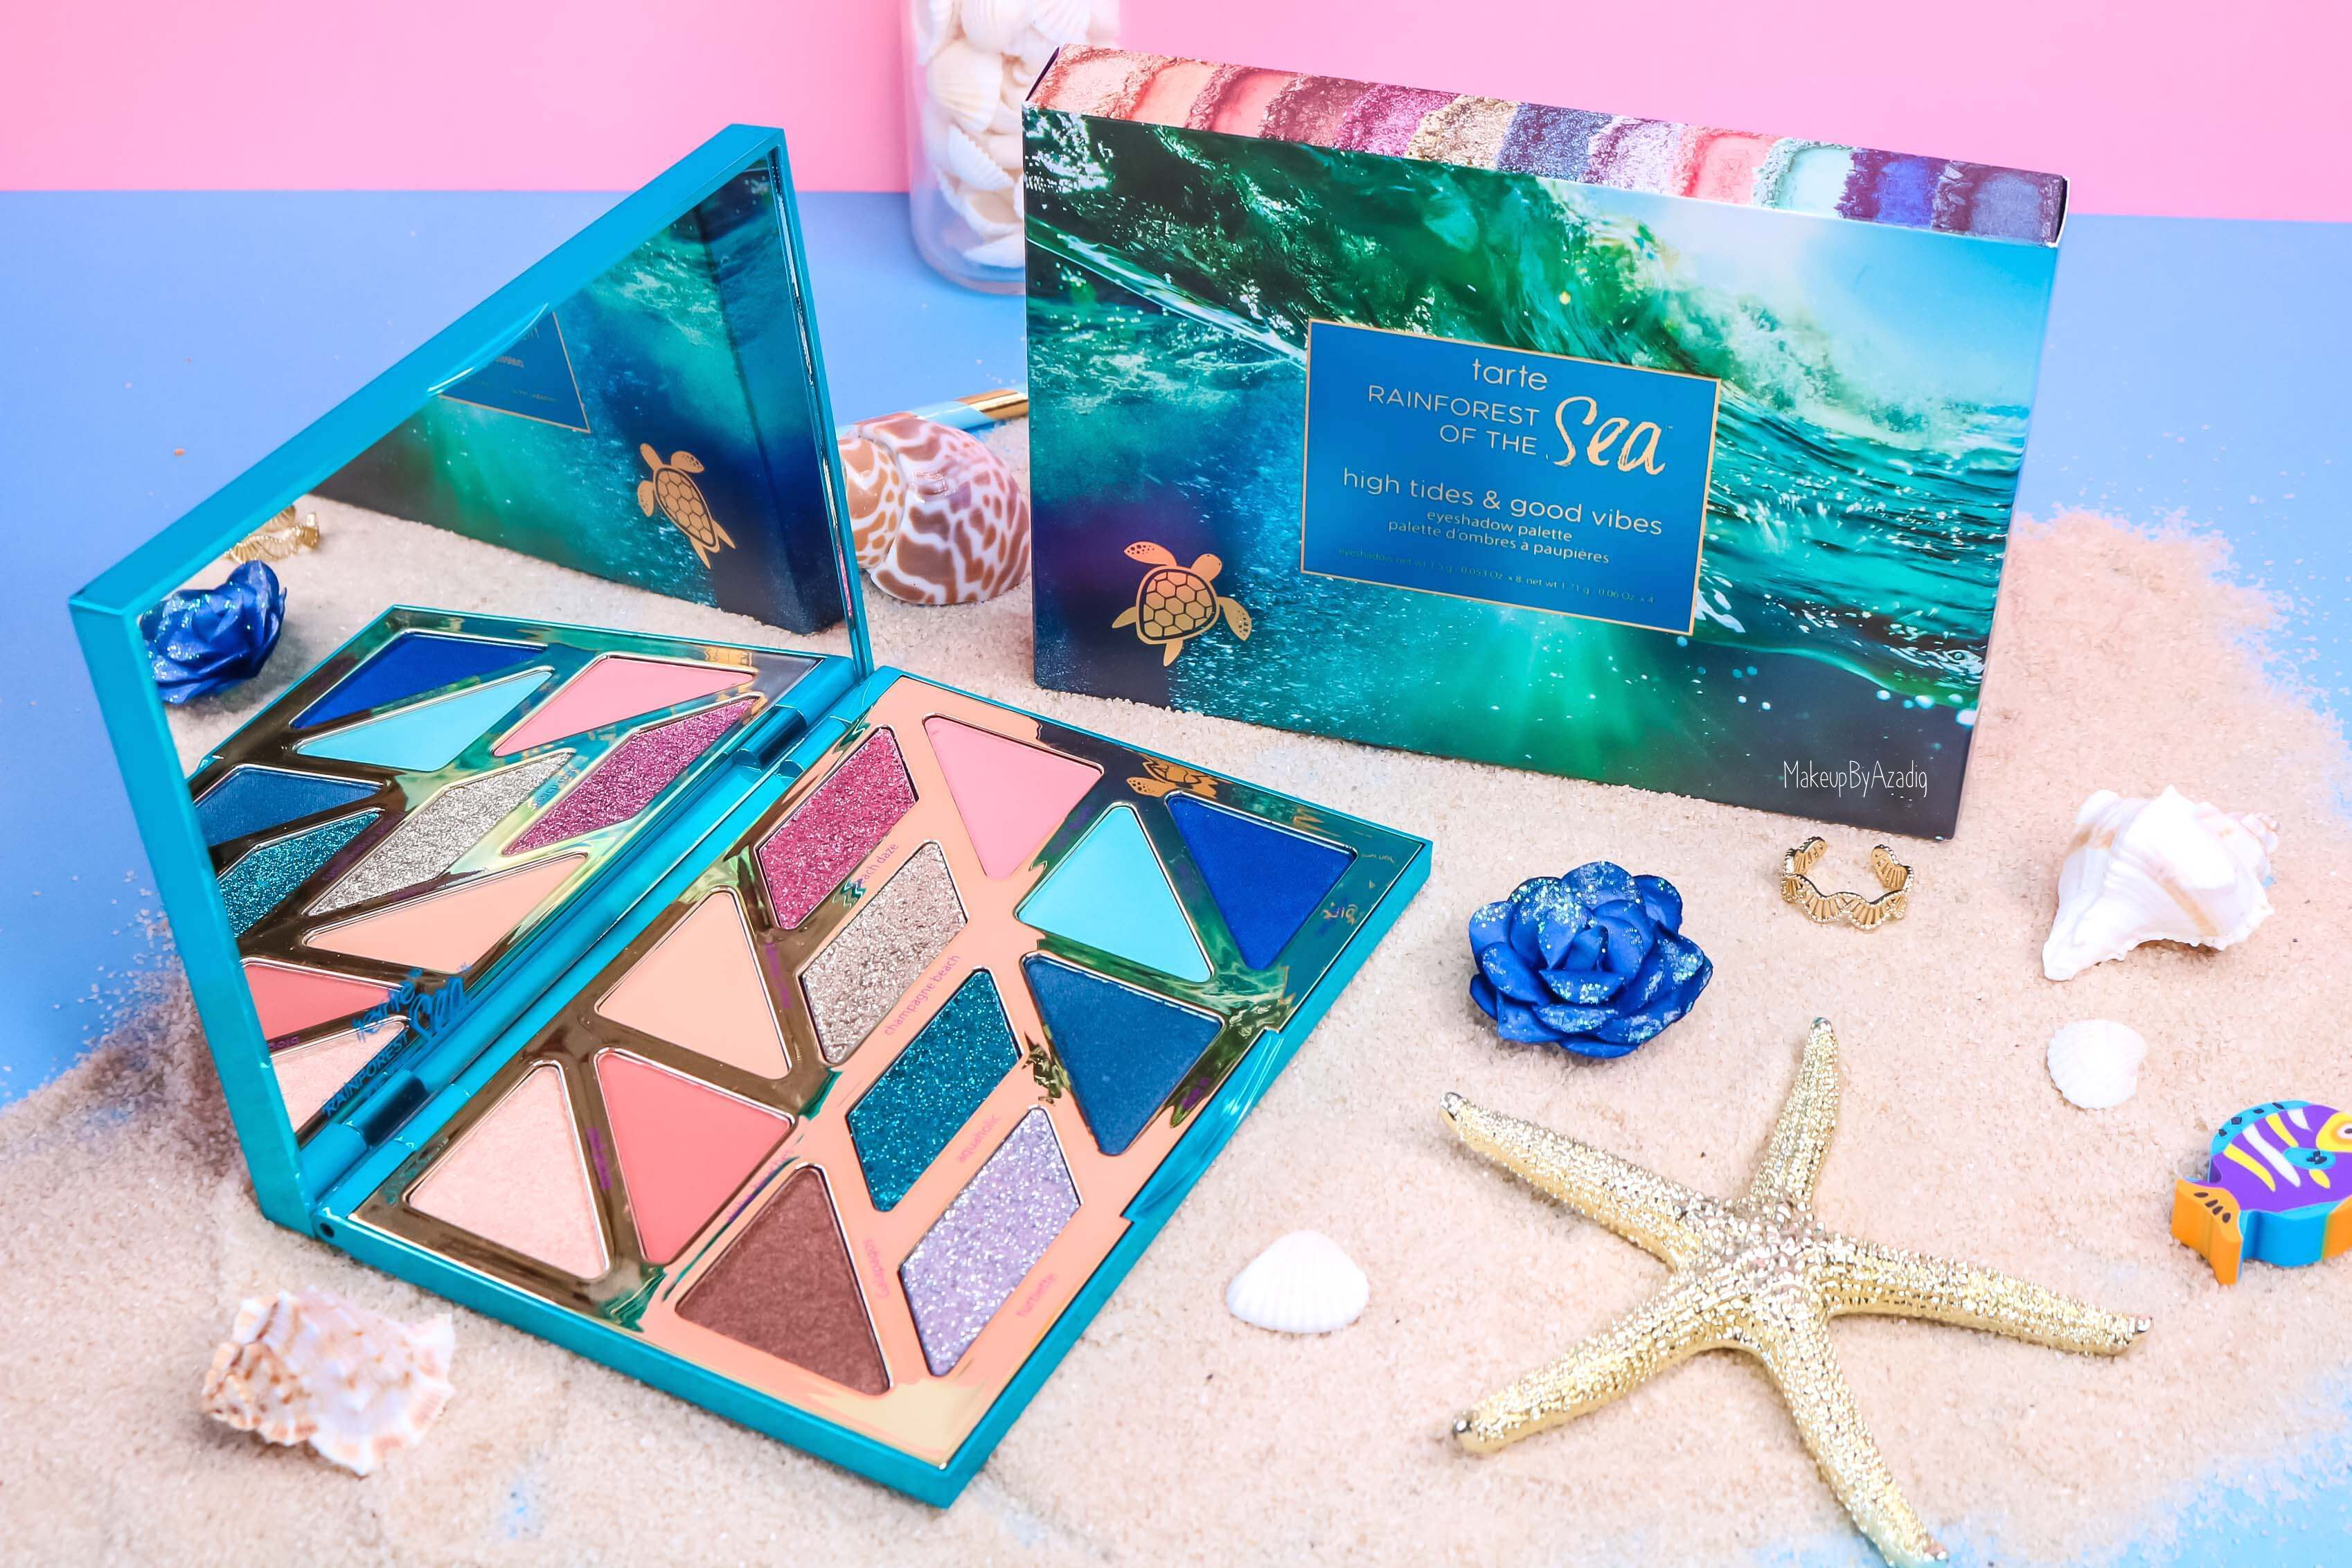 revue-palette-tarte-cosmetics-france-sephora-makeupbyazadig-swatch-prix-avis-rainforest-of-the-sea-miniature